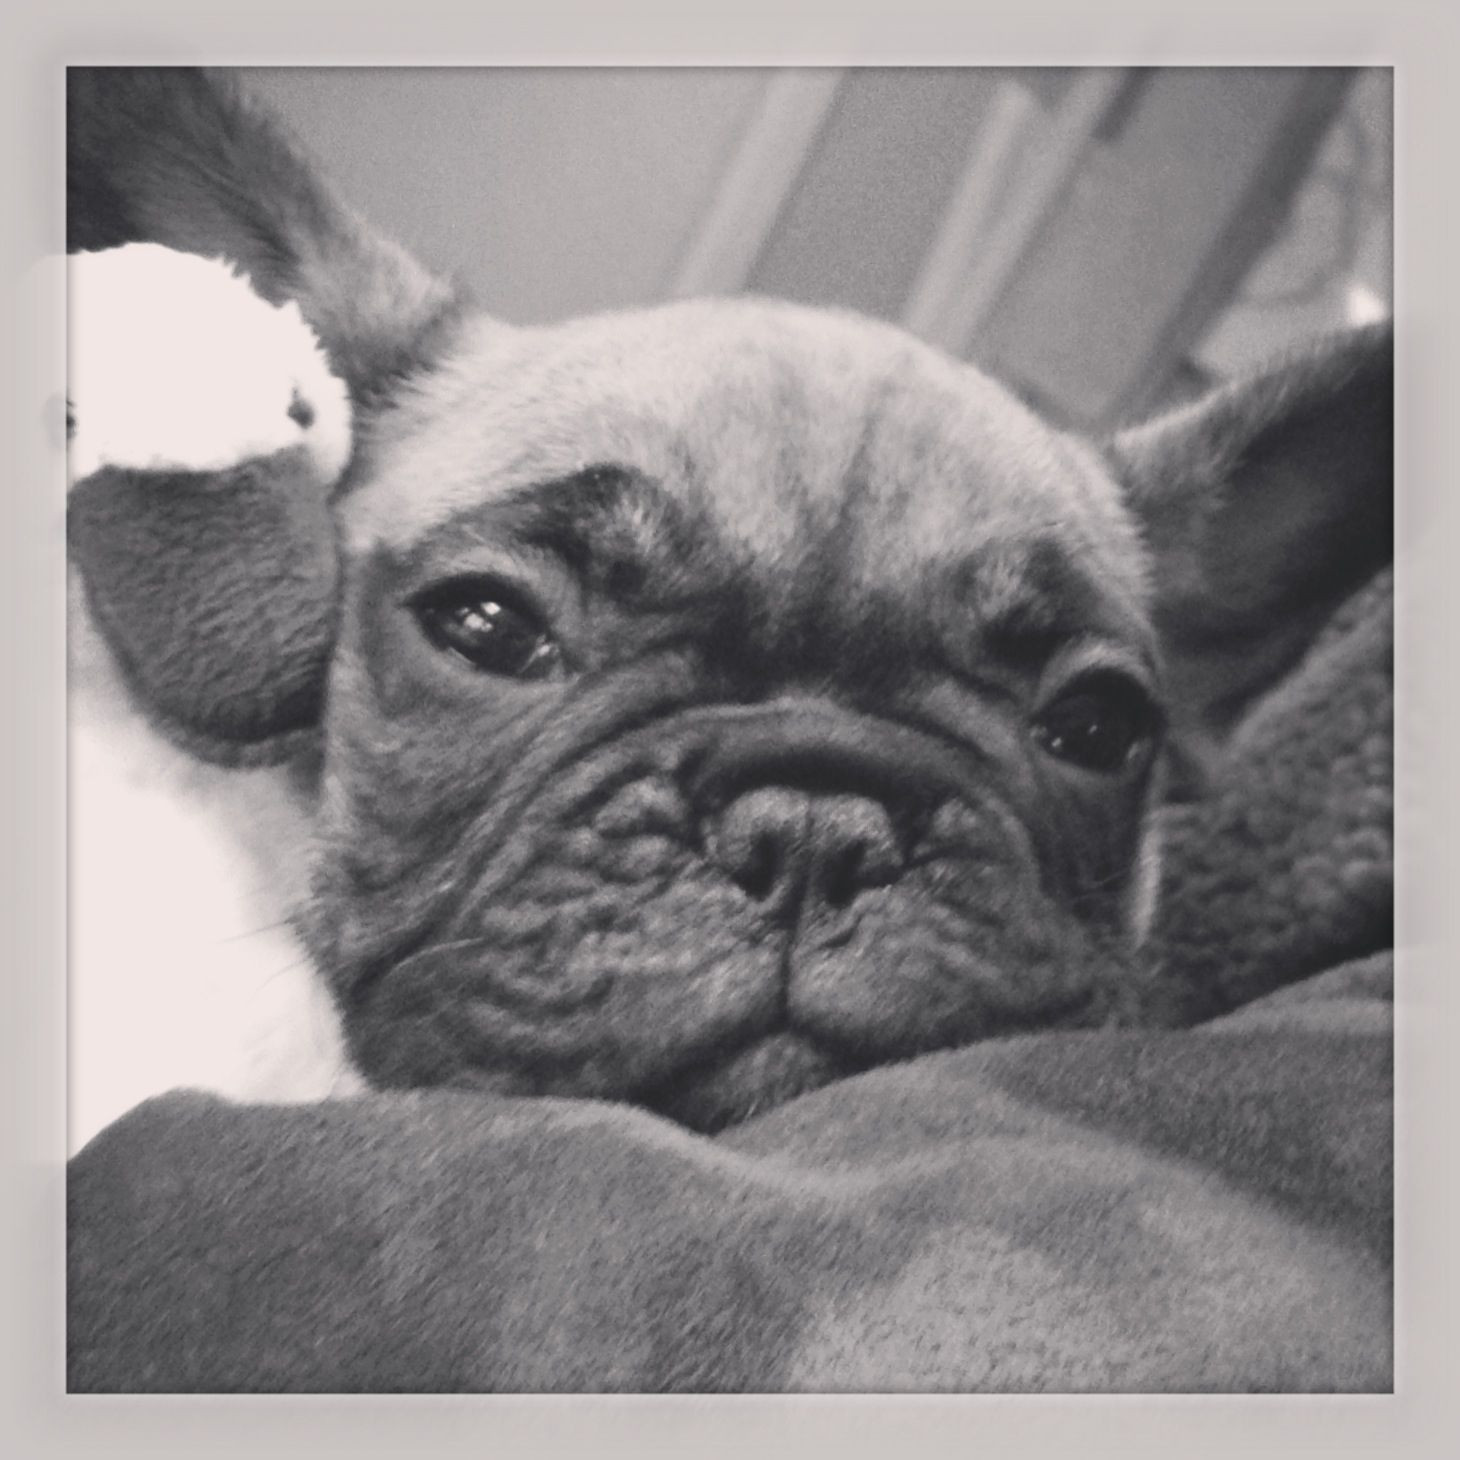 #Our cute little french bulldog@ arrivel#welcome Kamille#